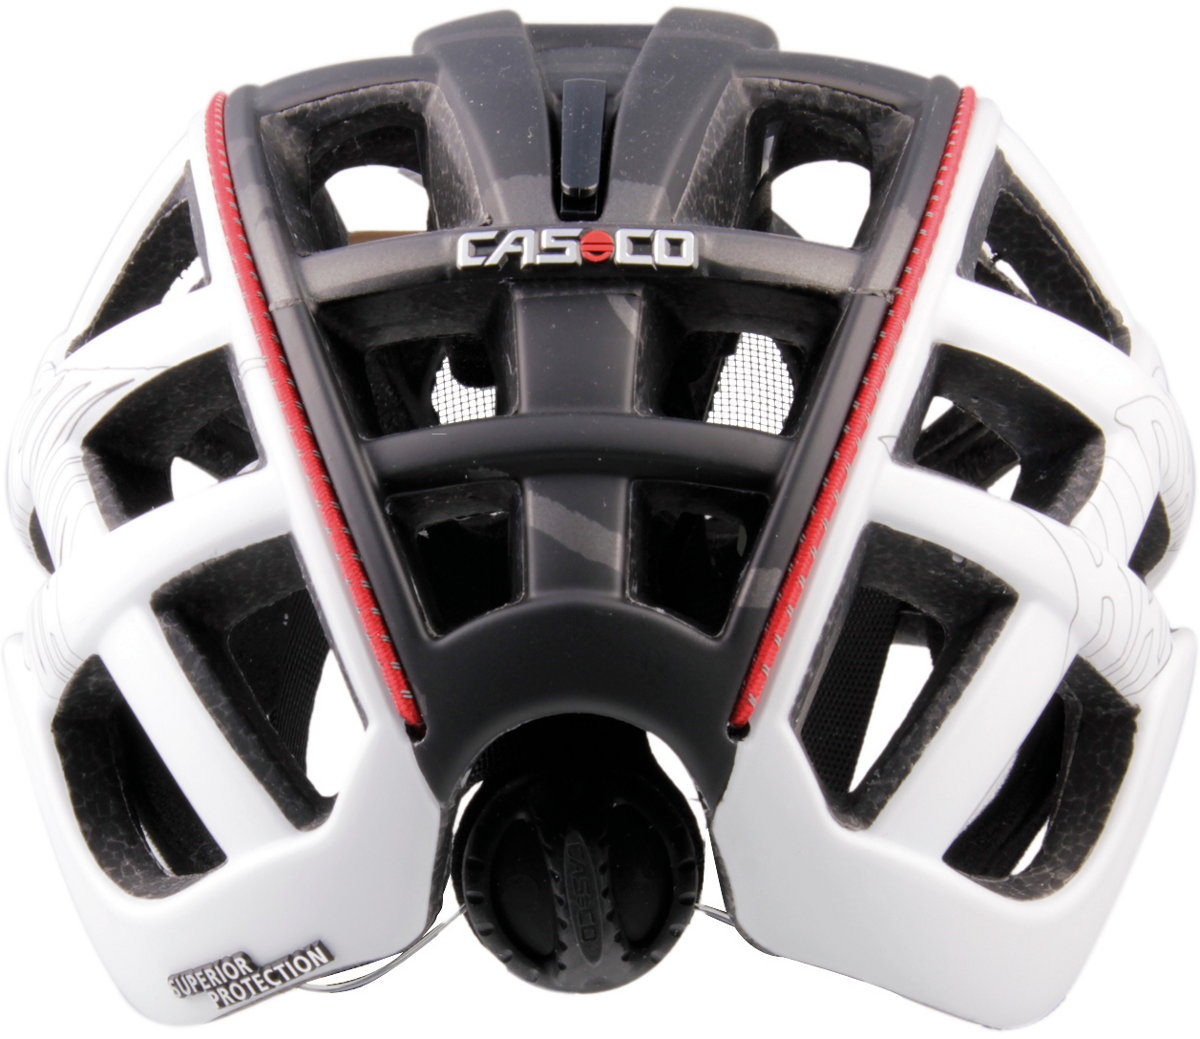 Casco_Cuda_Enduro_Comp_back_1620